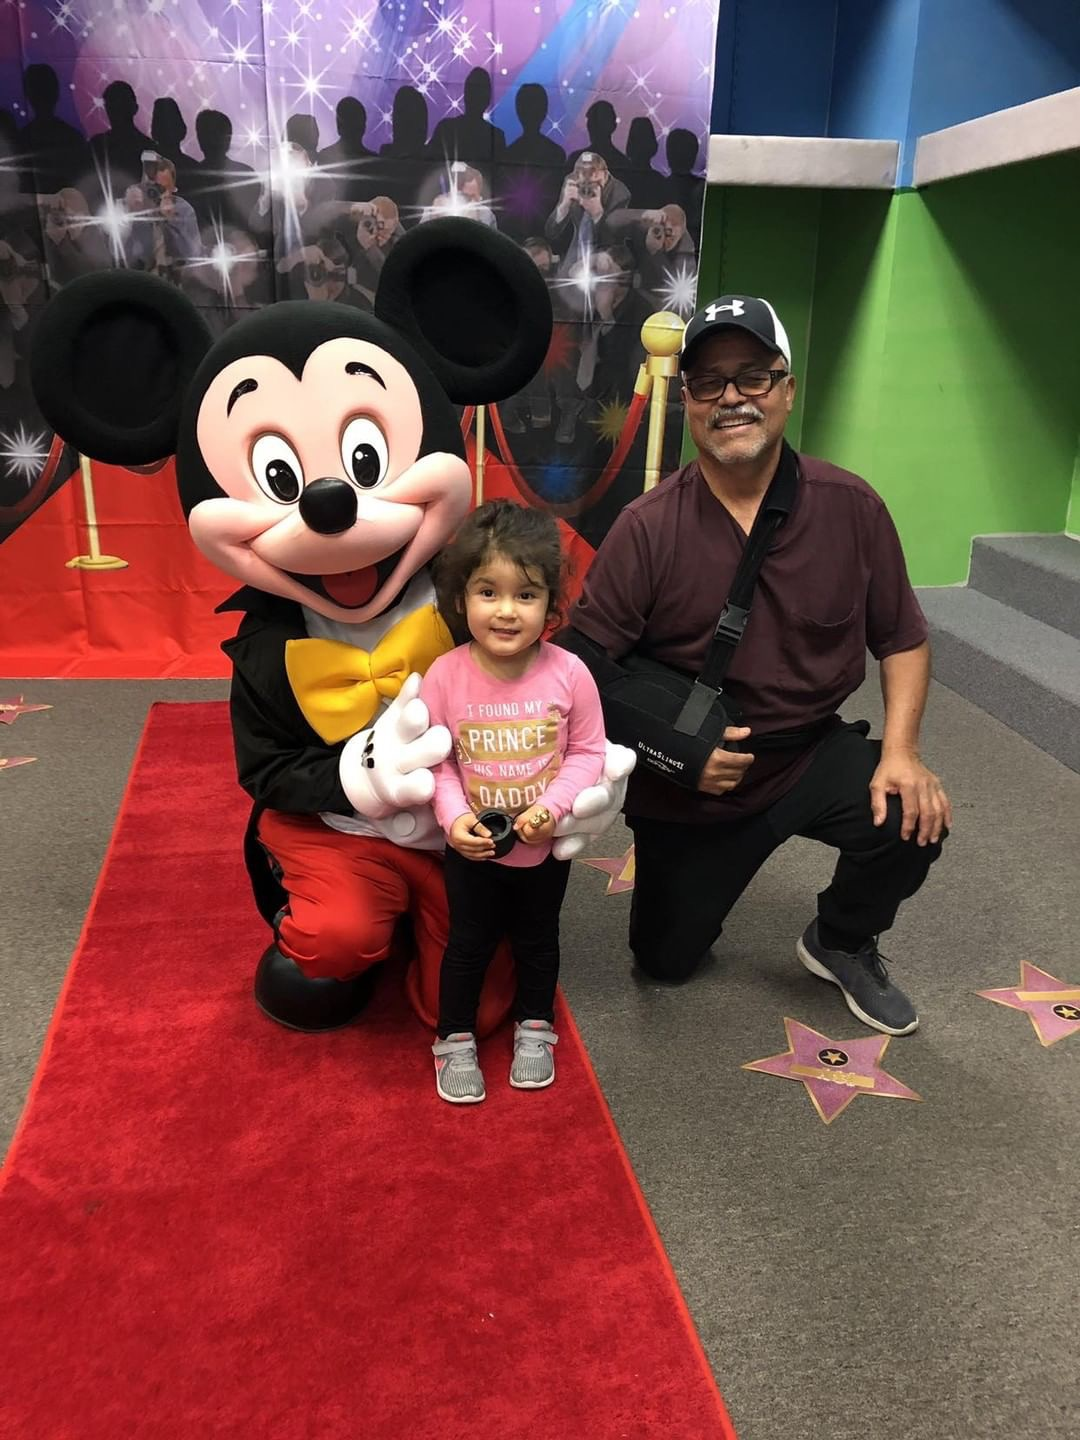 Red Carpet Event with Mickey